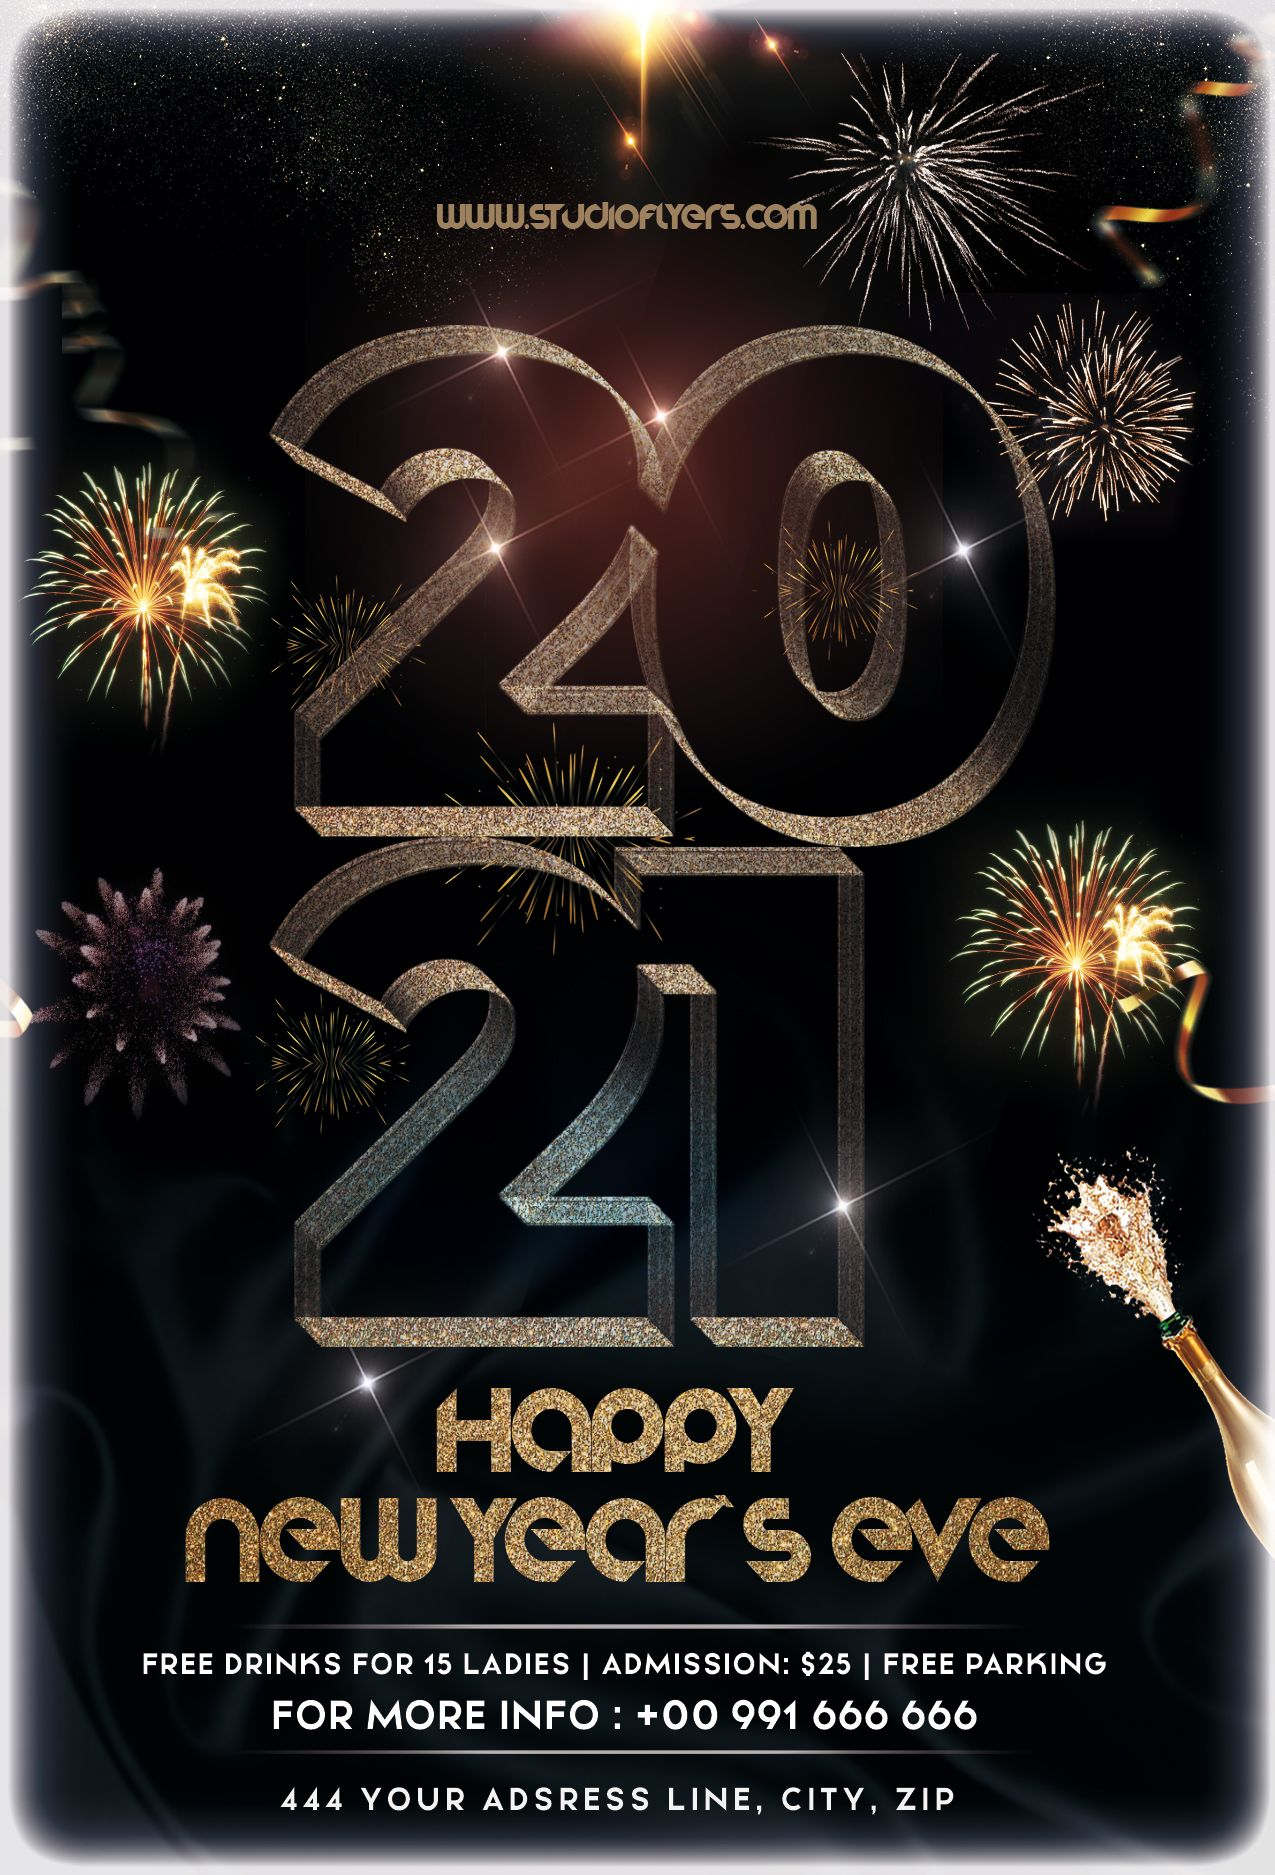 Happy New Year Eve 2021 Free Psd Flyer Template Studioflyers Com Free Psd Flyer Templates Free Psd Flyer Psd Flyer Templates